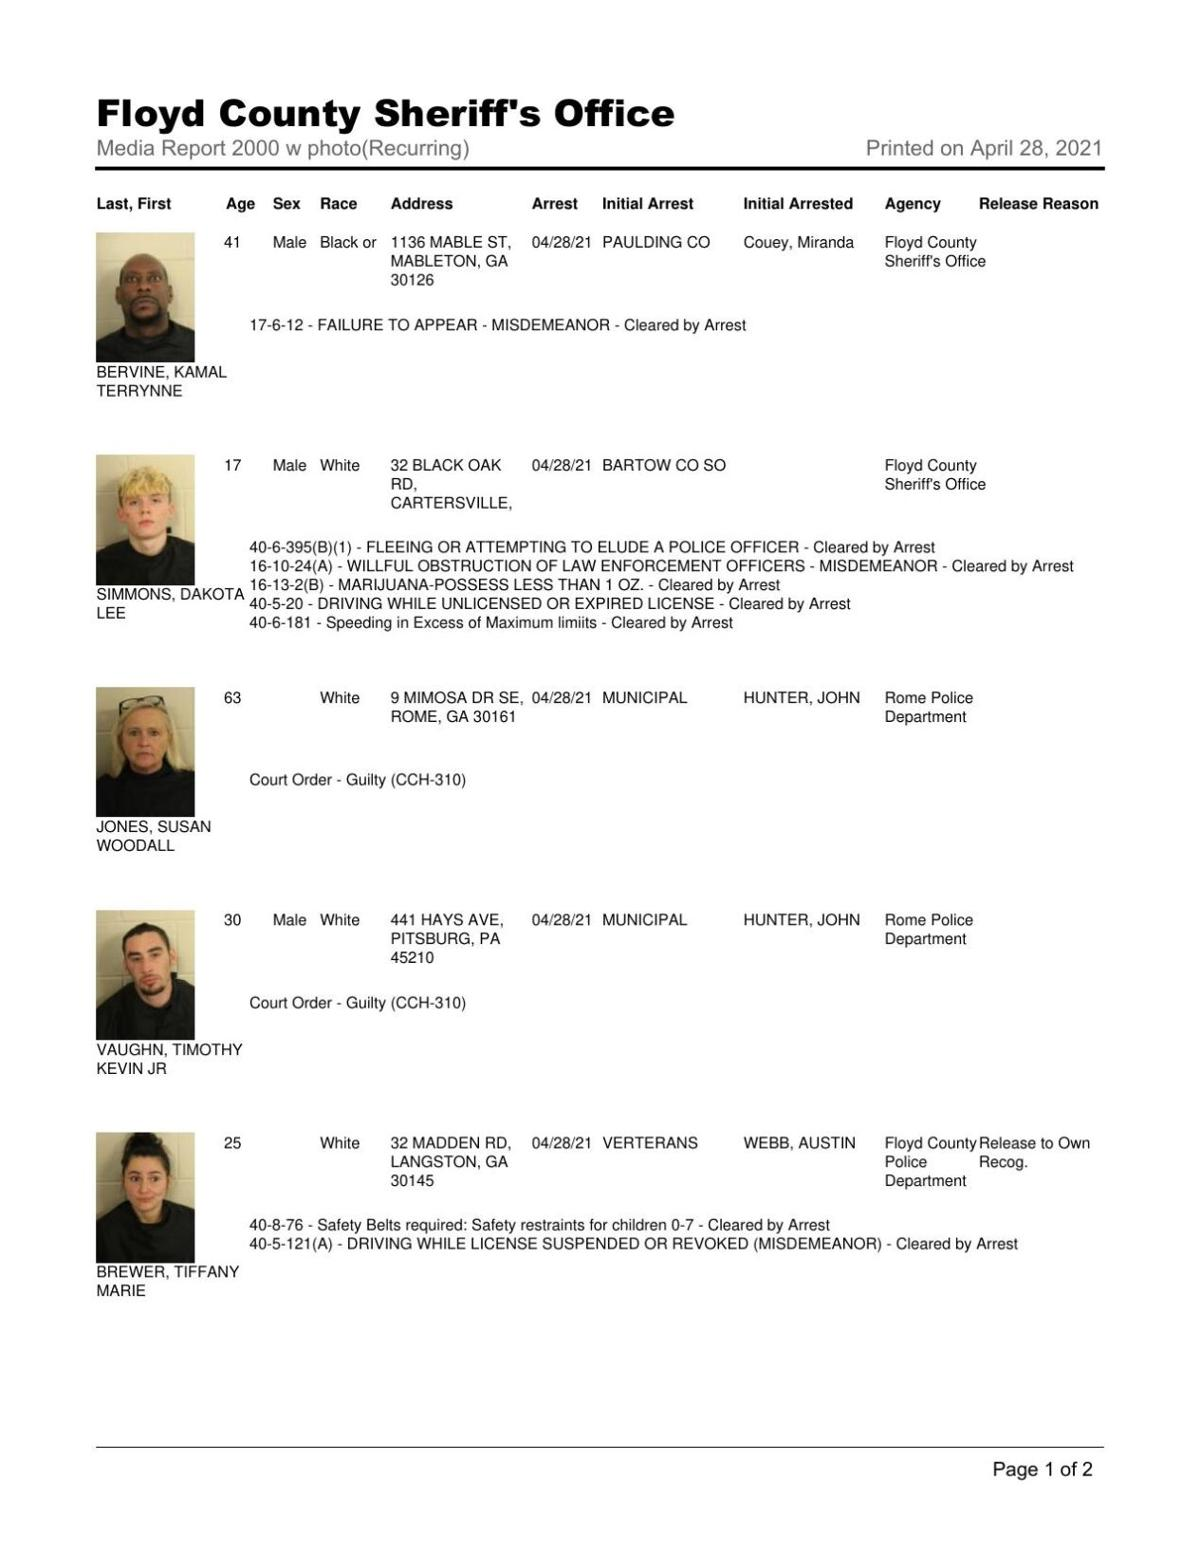 Floyd County Jail report for Wednesday, April 28